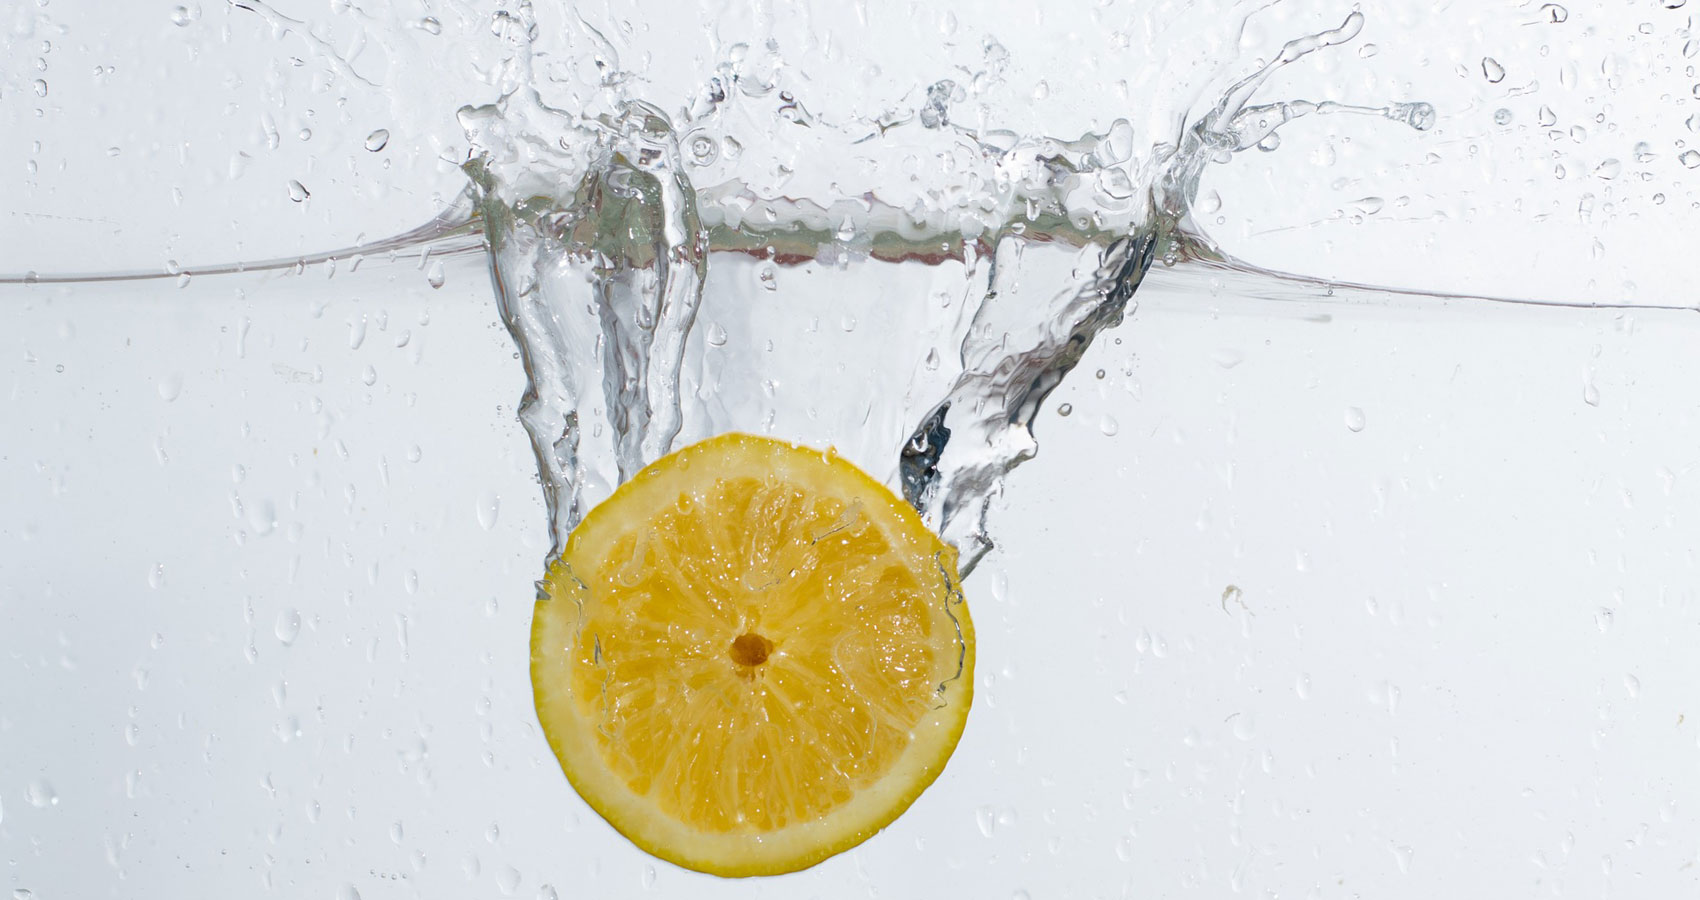 Lemonade, micropoetry written by Mary Bone at Spillwords.com